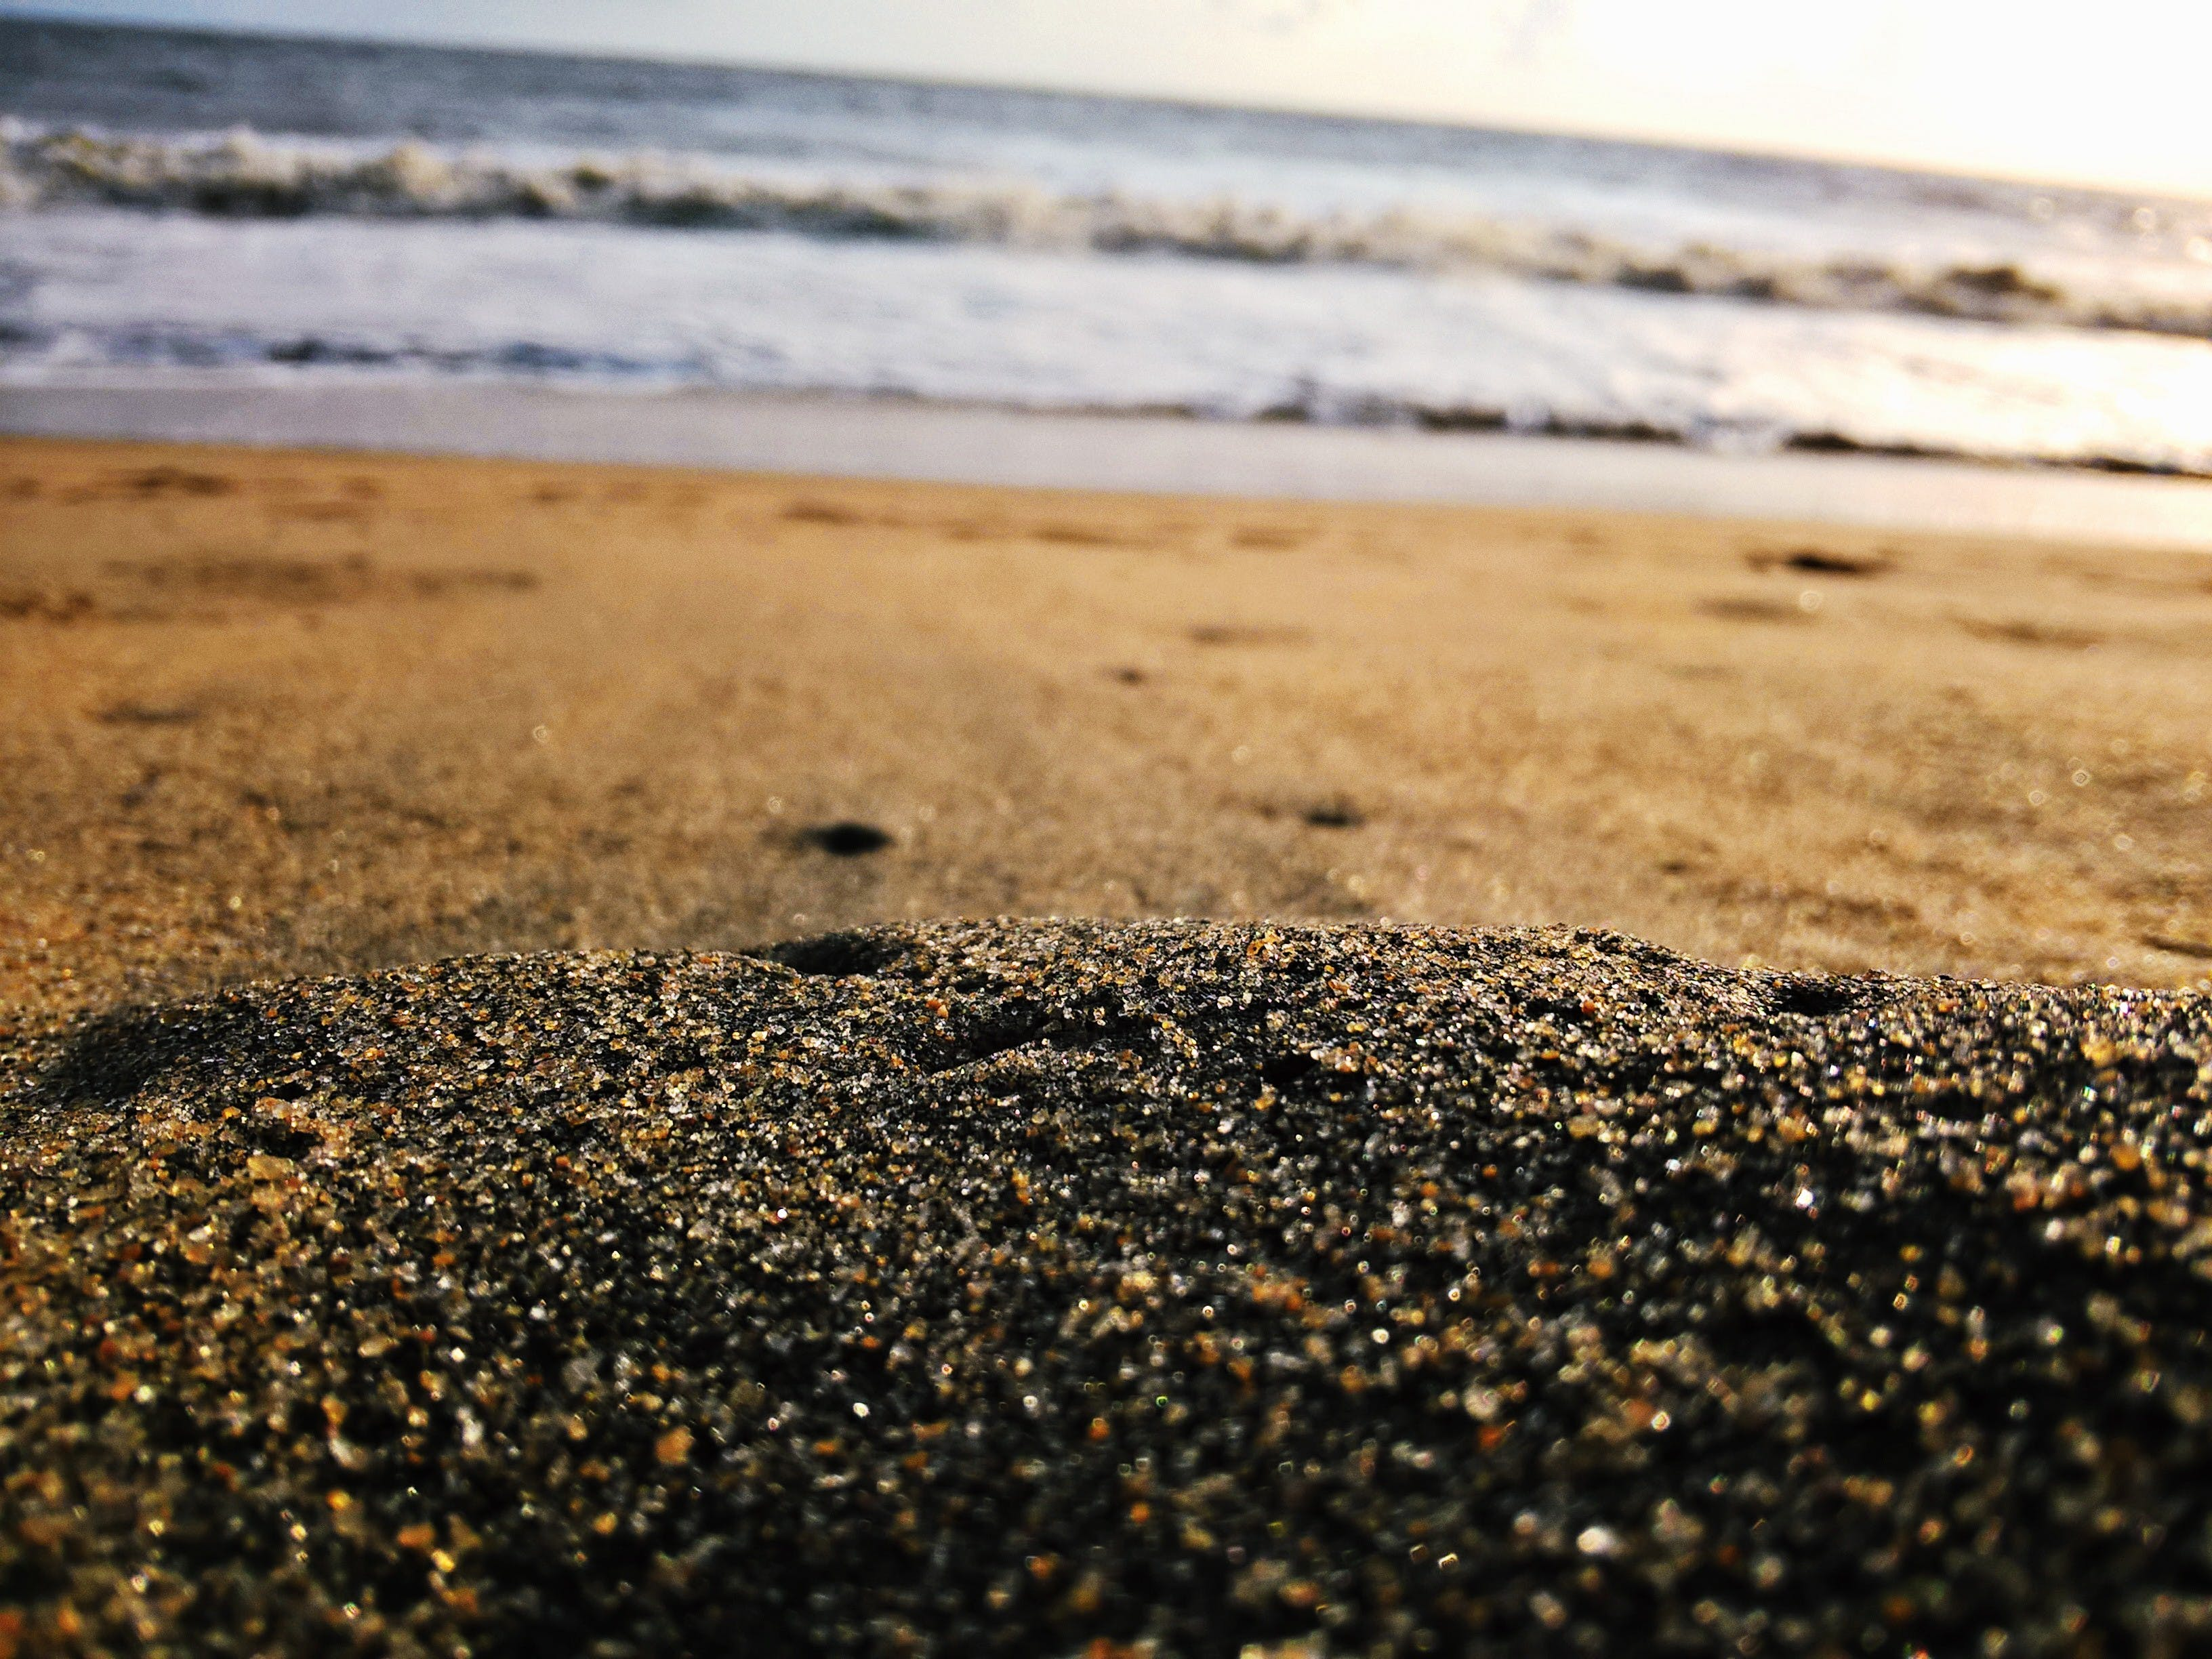 Low-angle Photography of Sand Near Body of Water